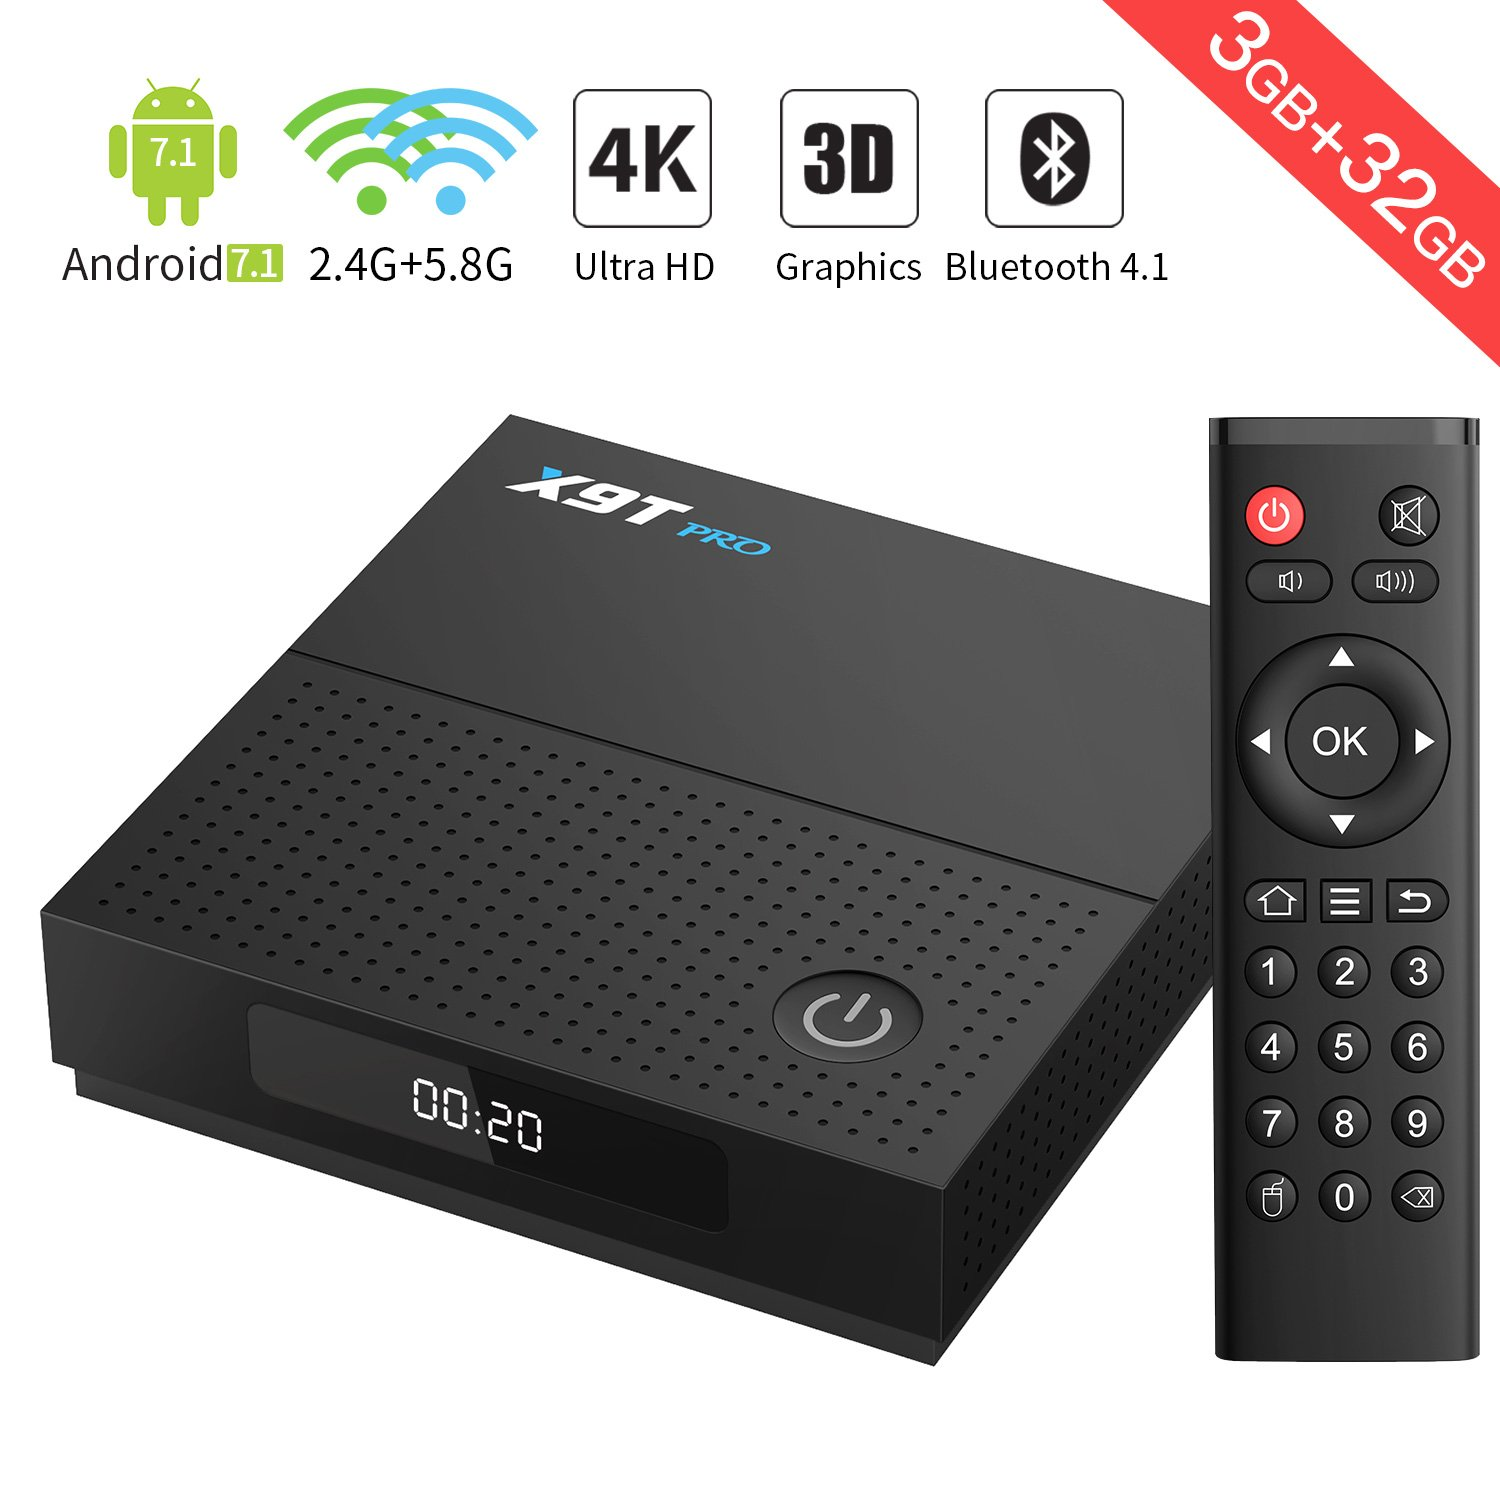 Android TV--X9T PRO Android 7.1 TV Box Amlogic S912 Octa-Core 3G+32G con 2.4G +5.8G WiFi 1000M LAN Port BT 4.1 4K/2K H.265 Decodificación de Video Smart TV Box: Amazon.es: Electrónica